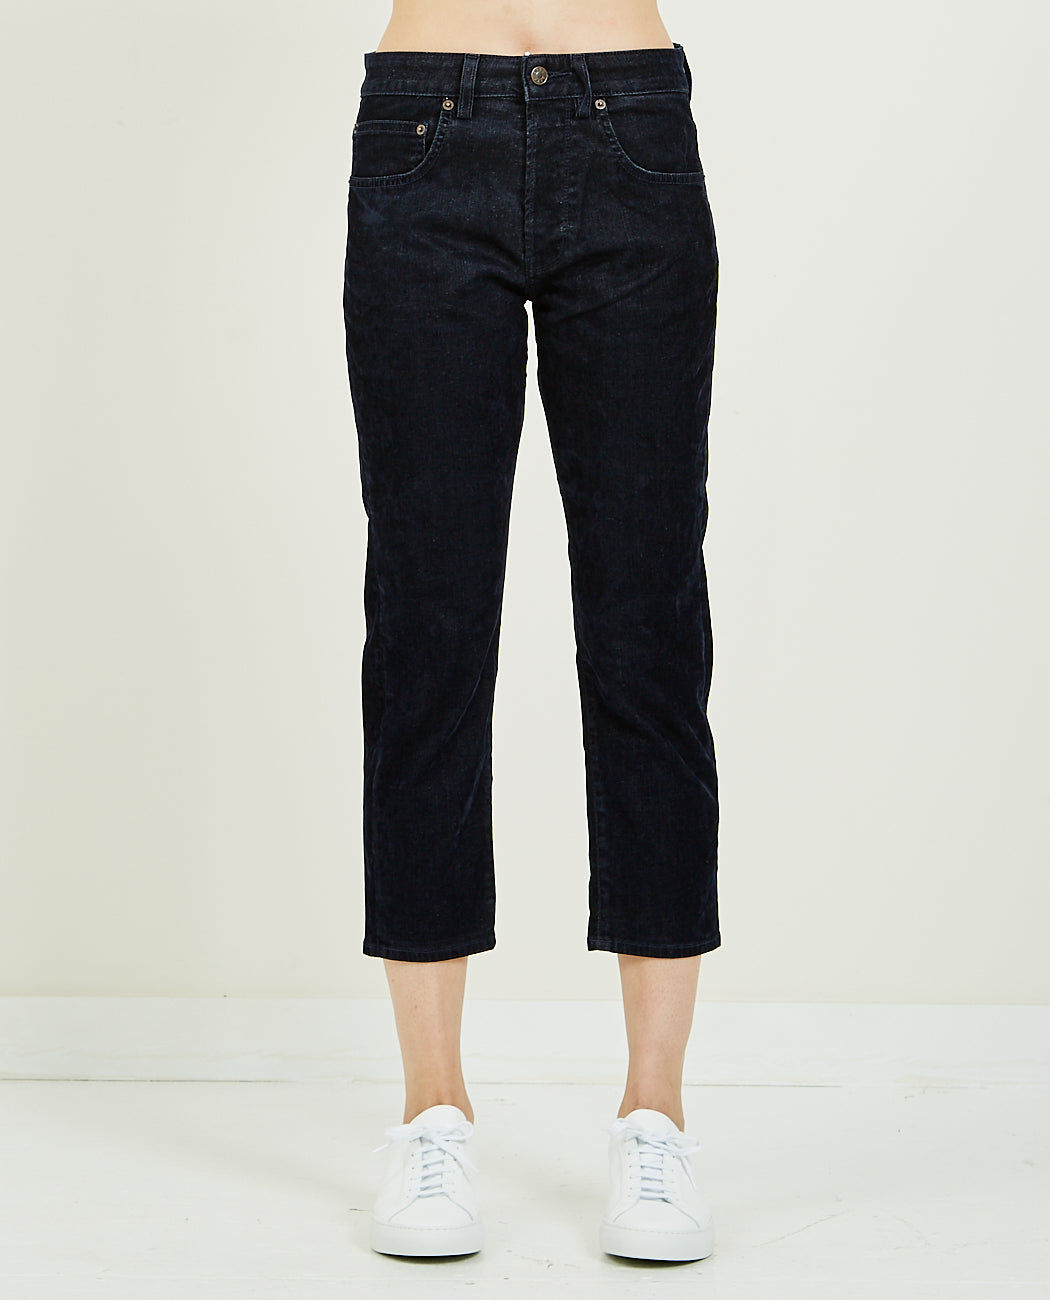 04ac74b282d Image depicting featured products. WOMEN S DENIM